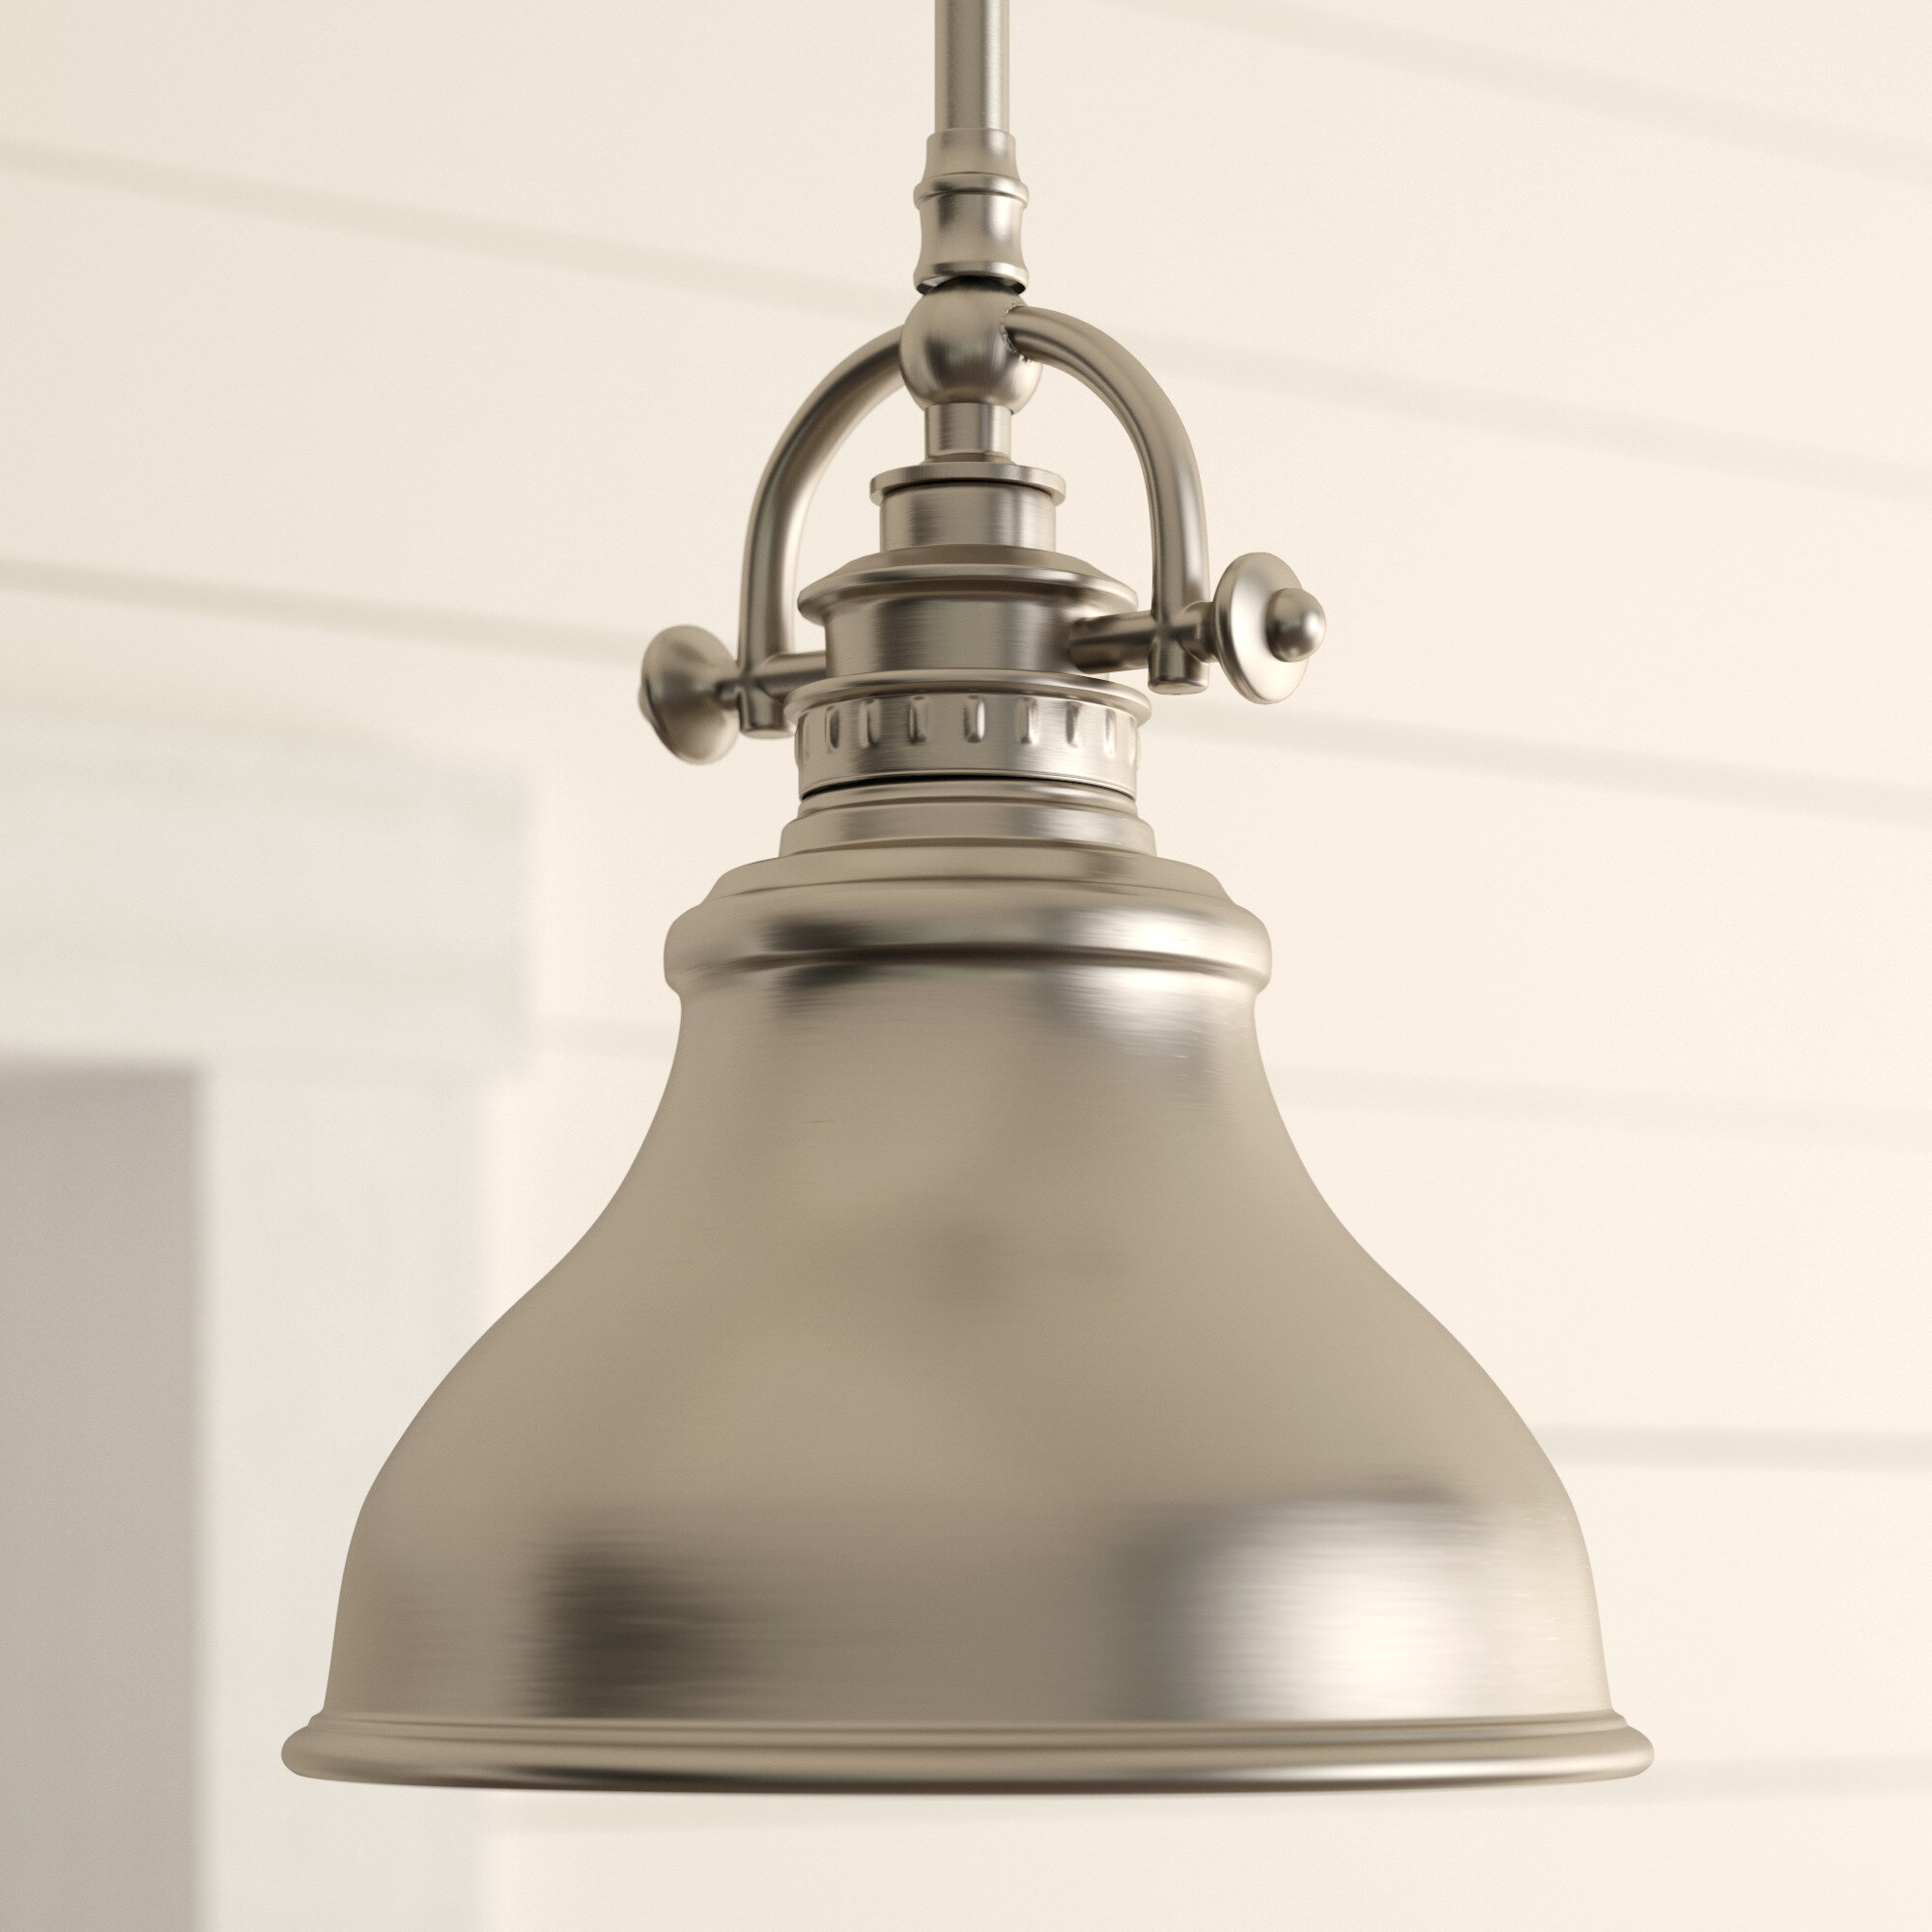 Beachcrest Home Mueller 1 Light Single Dome Pendant Intended For Amara 3 Light Dome Pendants (Image 8 of 30)